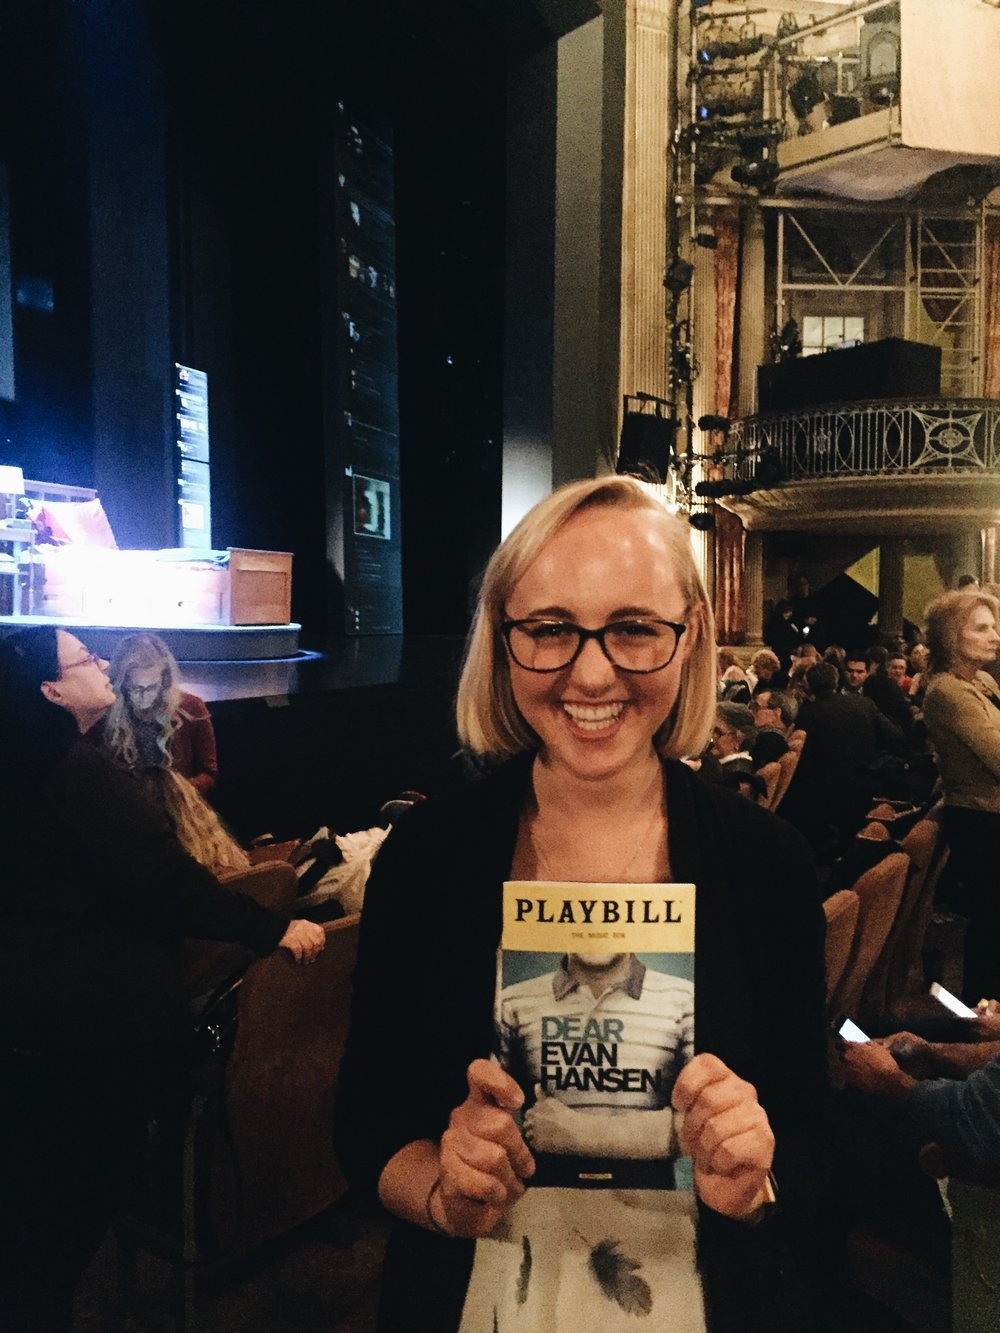 I desperately wanted to see Dear Evan Hansen, but tickets were sold out.I stood in the cancellation line 2 hours before the show and was able to get a single seat, orchestra left, 6 rows back. It was the most incredible performance I've ever seen and I bawled by eyes out. If you haven't listened to it yet, go listen to the entire soundtrack on Spotify. You'll thank me later.